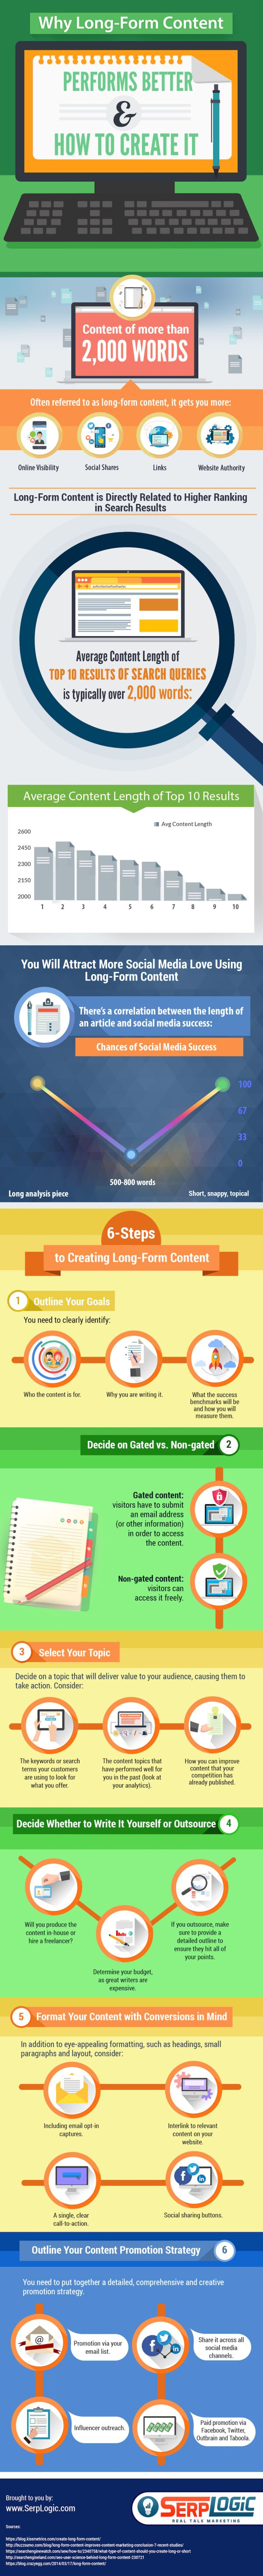 Infographic: Value Of Long-Form Content